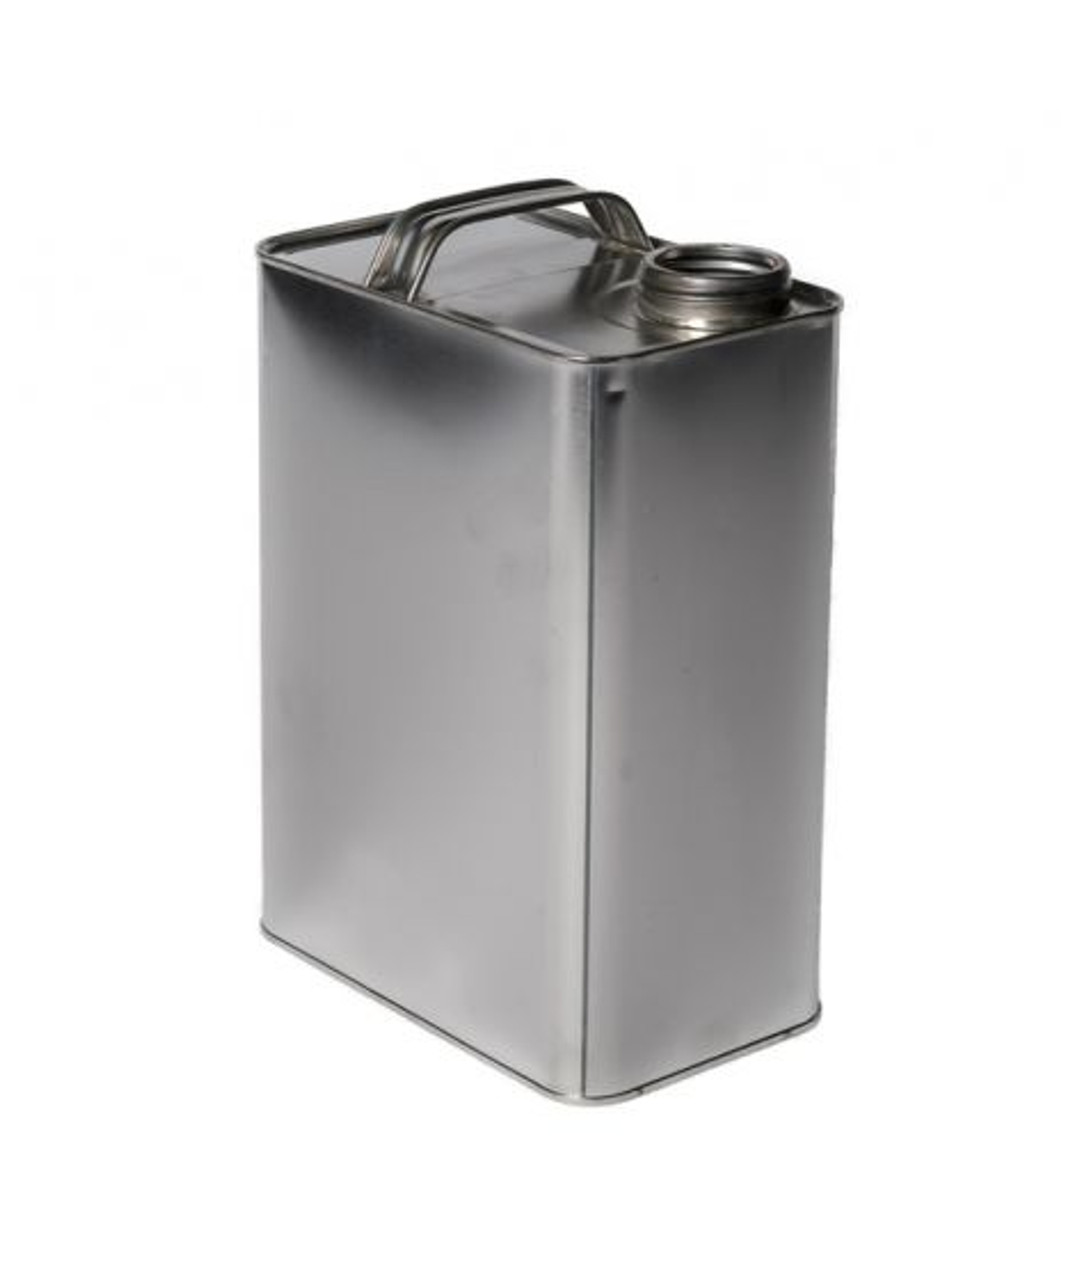 1 GALLON F-STYLE OBLONG METAL CAN - 1 3/4 INCH DELTA